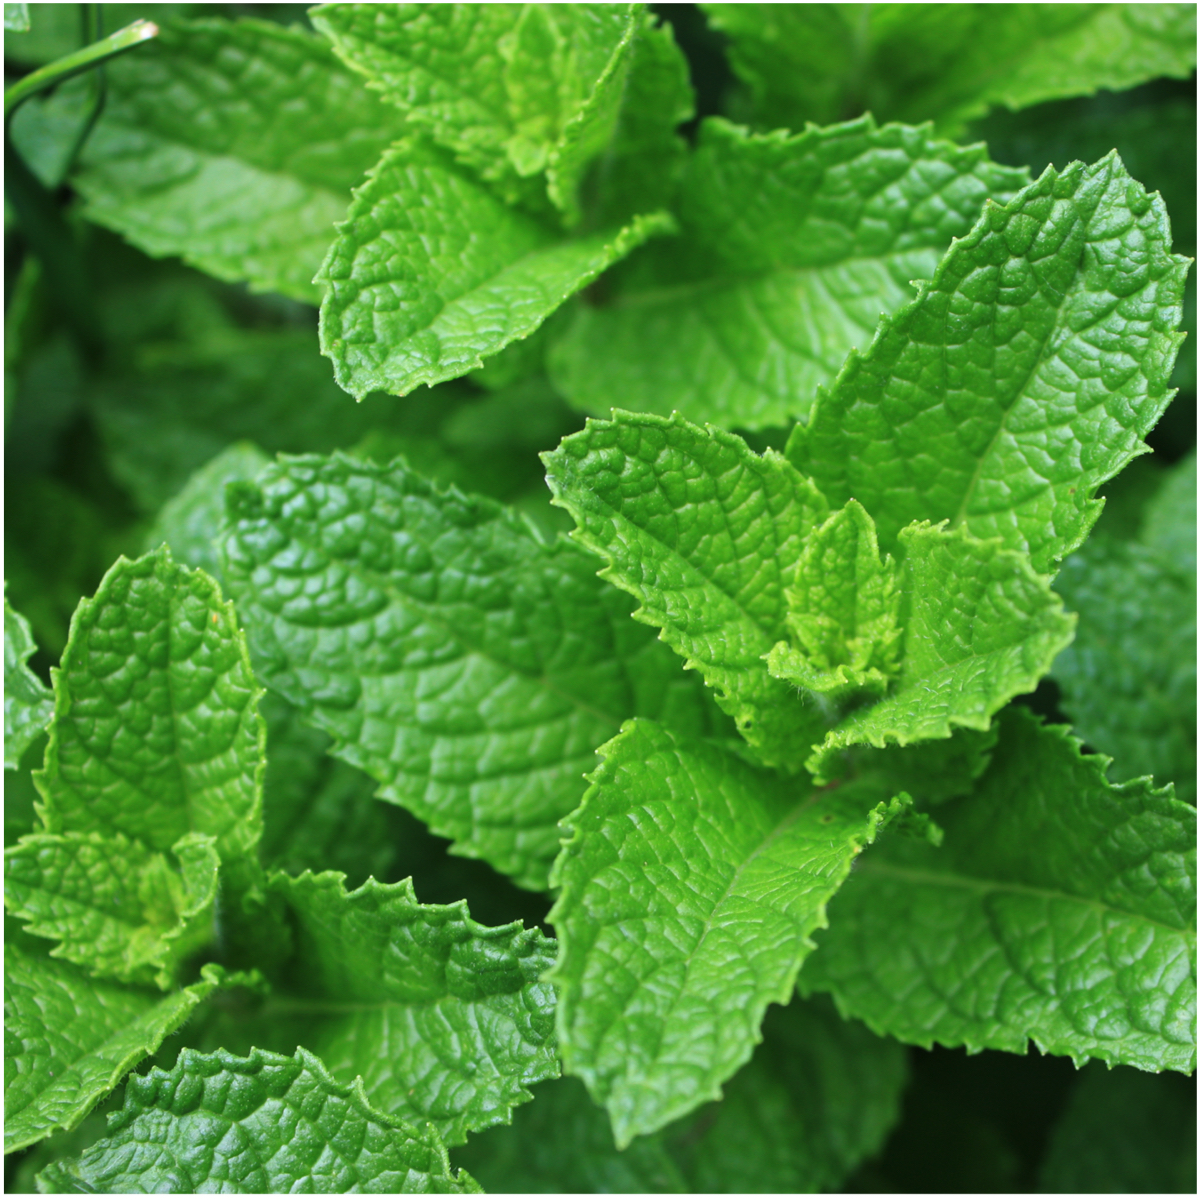 Bulk Packet of 10,000 Seeds, Spearmint Herb (Mentha spicata) Non-GMO Seeds By Seed Needs